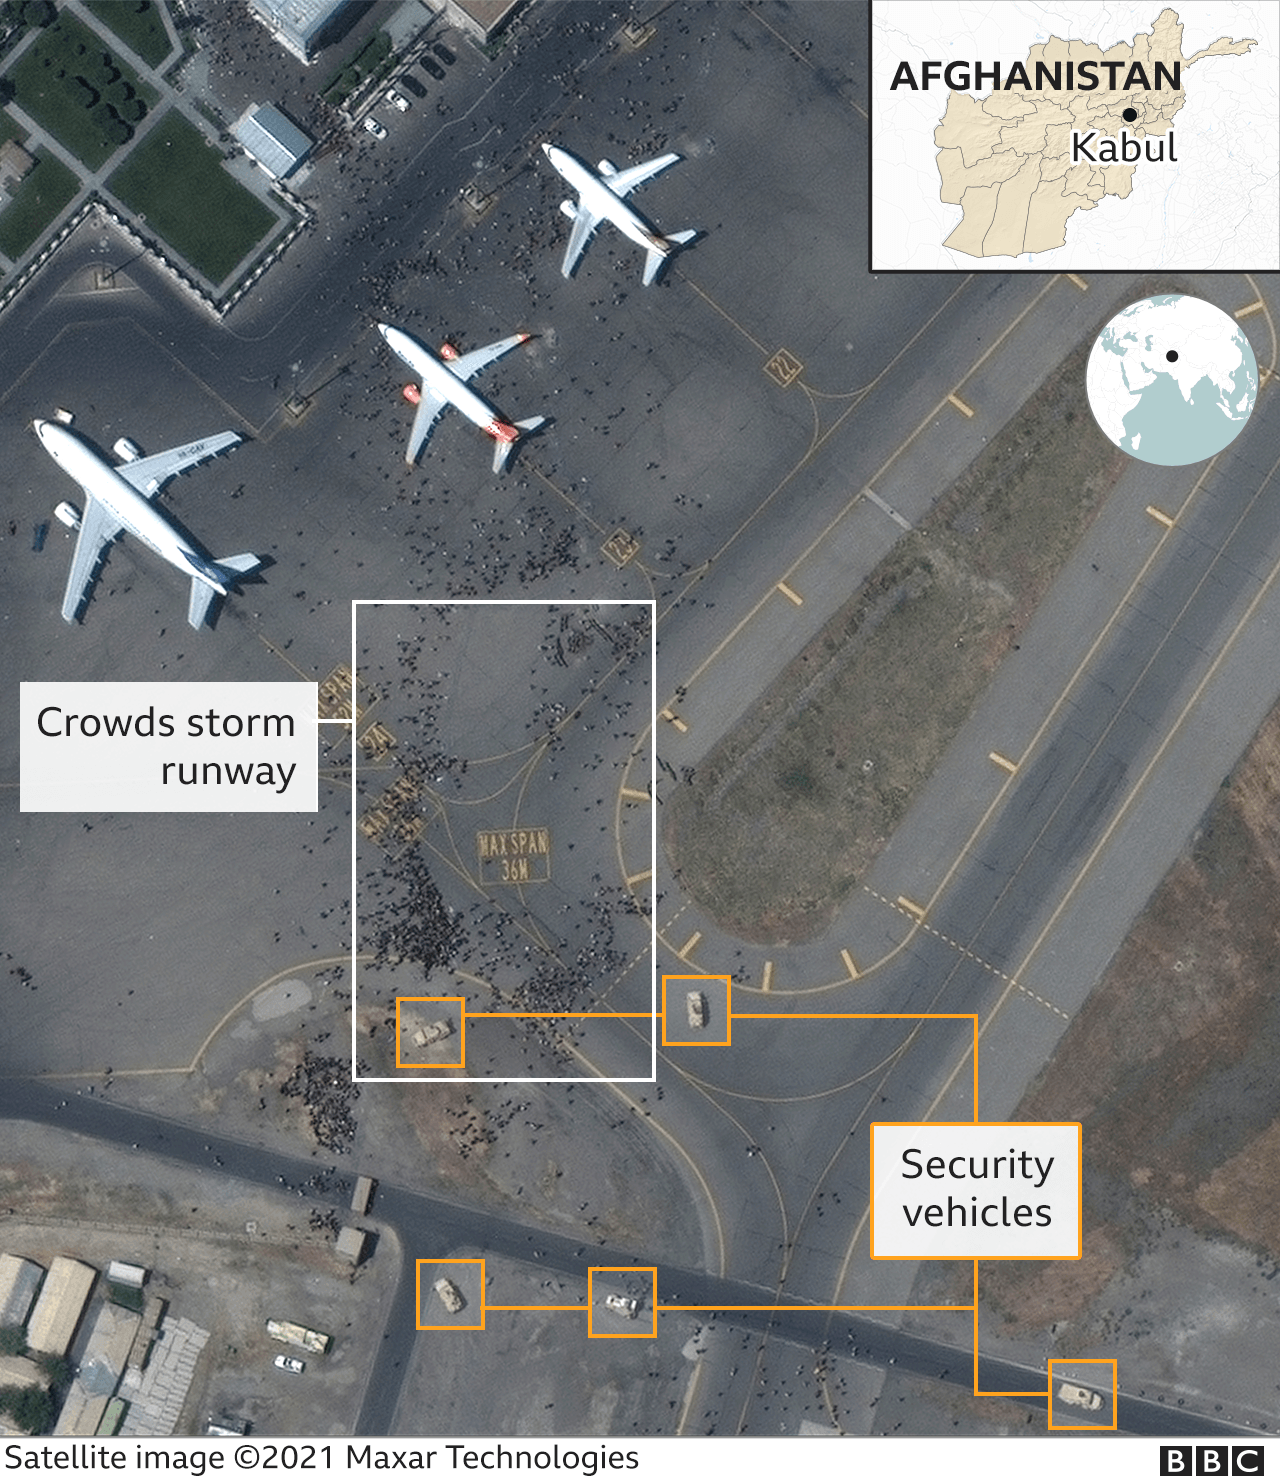 Satellite image showing crowds on the tarmac at Kabul airport